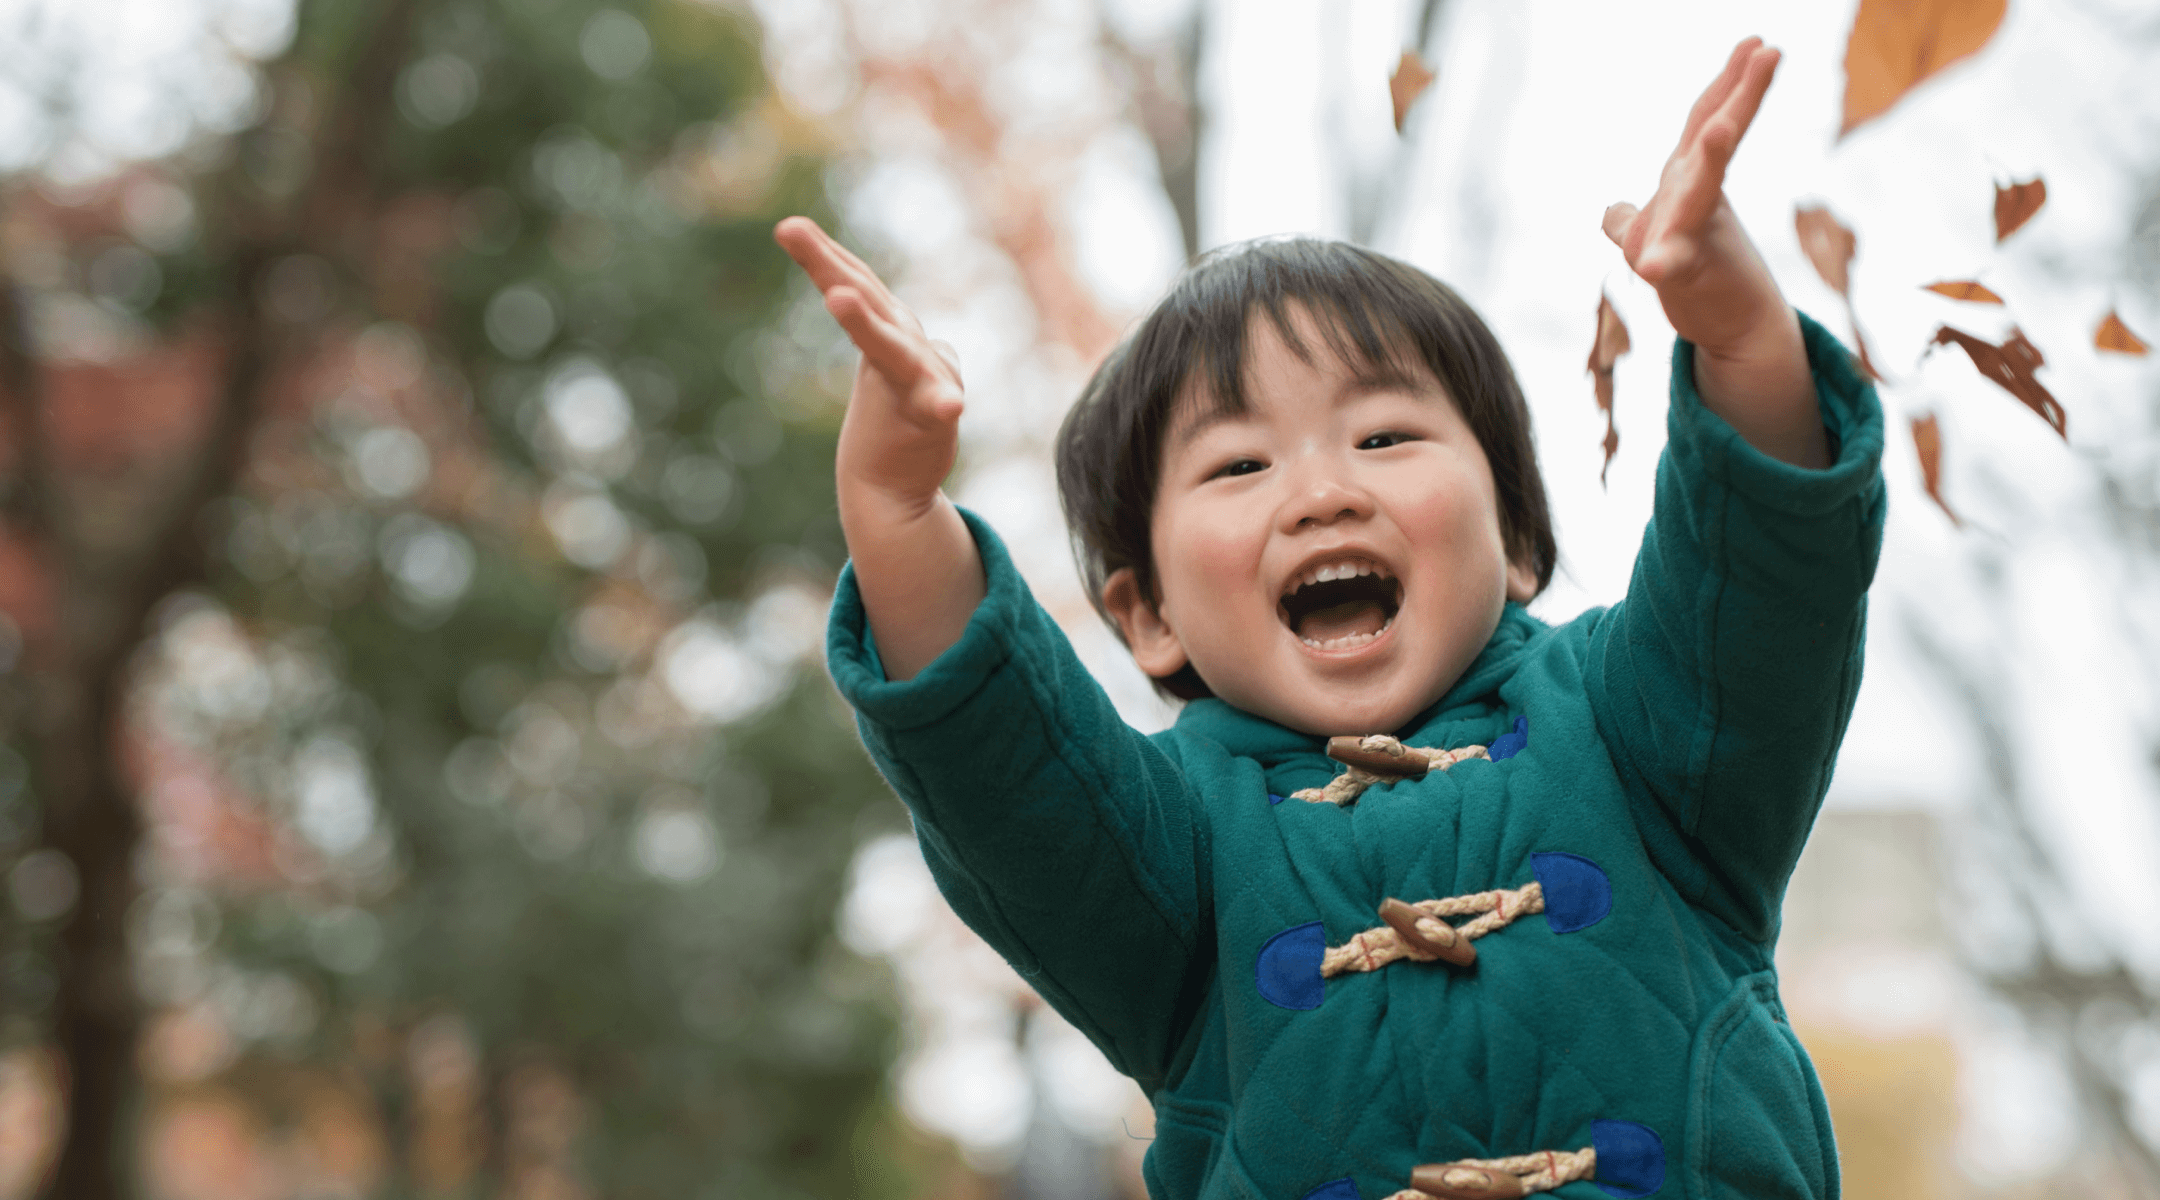 Young child throwing leaves